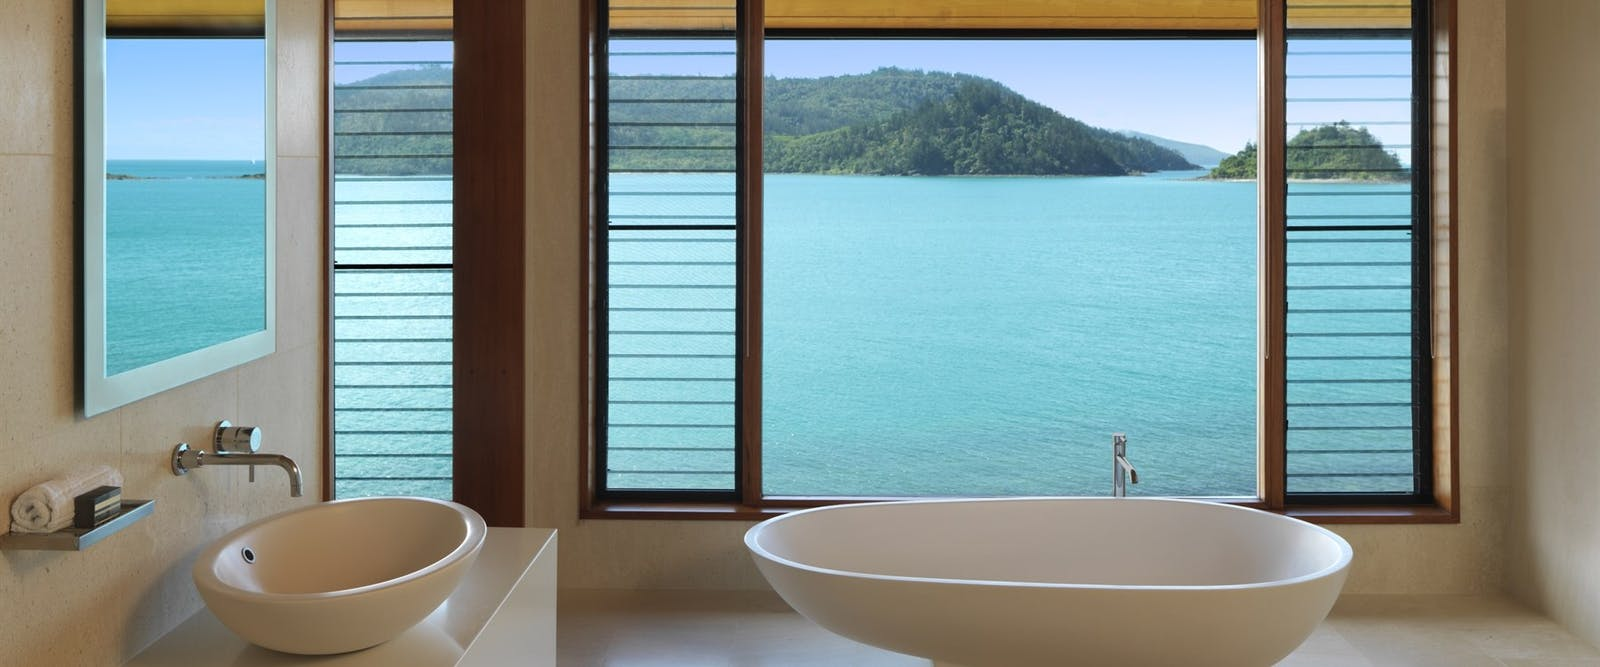 Bathroom overlooking the sea, qualia, hamilton island